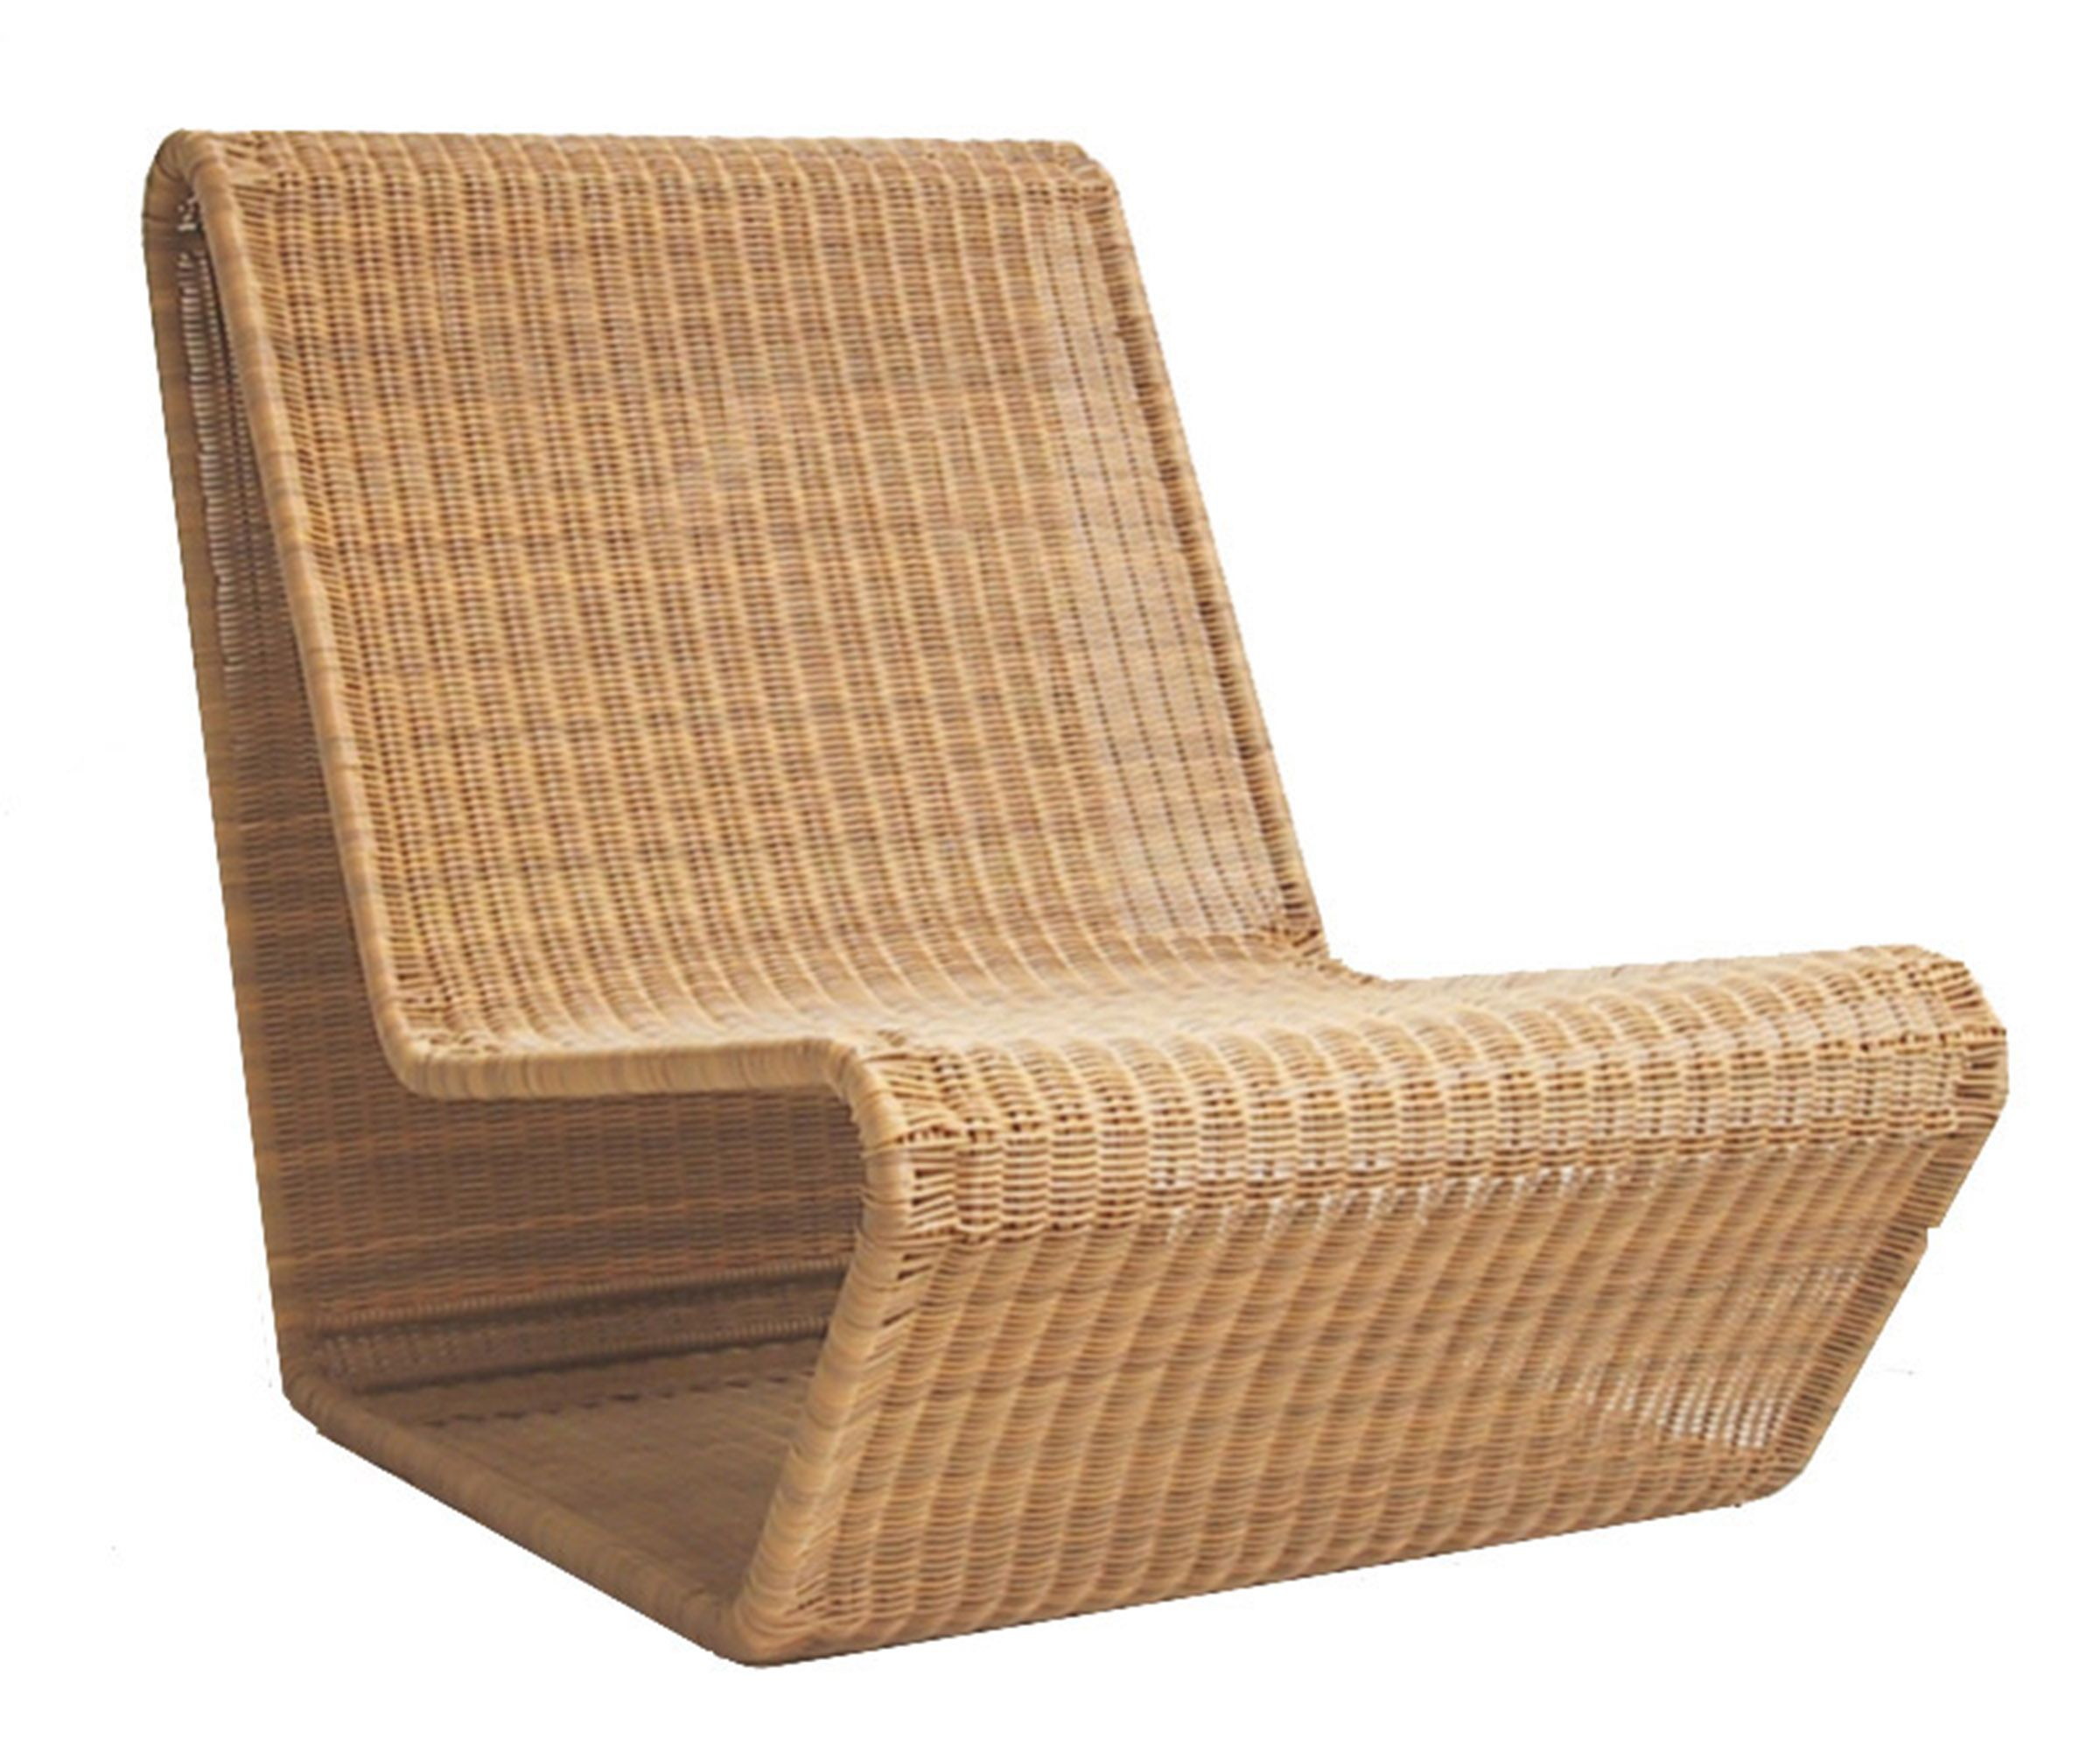 6733 Wave Outdoor Lounge Chair designed by Danny Ho Fung ca 1966 for the Fo